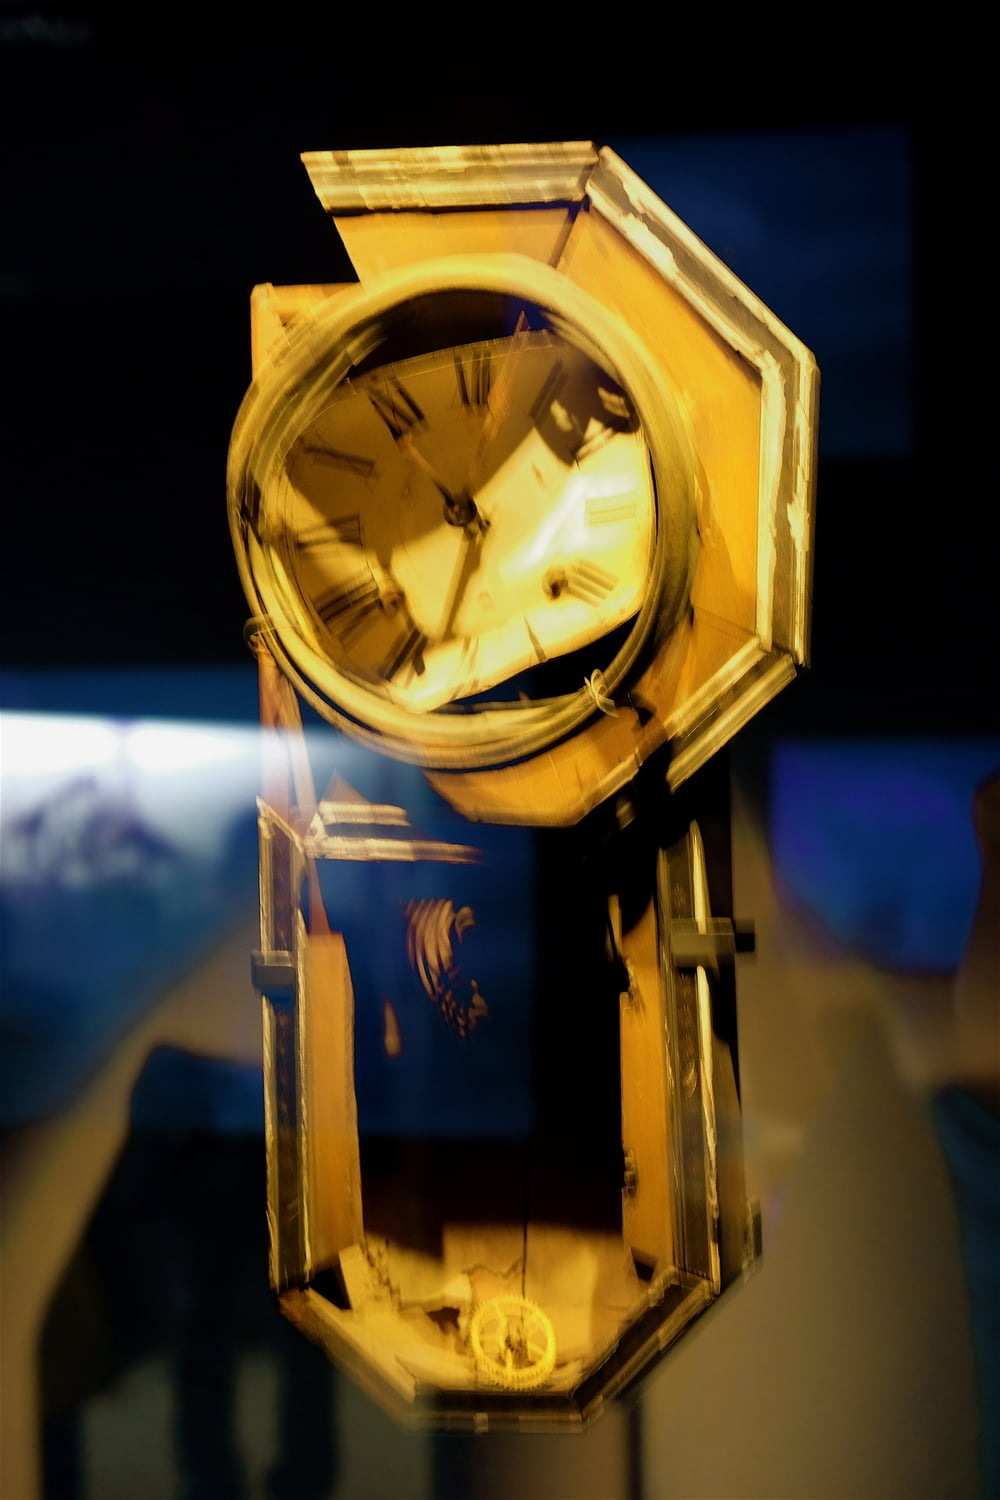 This wall clock was found in a house near Sanno Shinto Shrine, about 800 meters from the hypocenter of the nuclear bomb explosion in Nagasaki. The clock was shattered by the blast, and its hands stopped at 11:02 -- the moment of the explosion. Nagasaki Atomic Bomb Museum.